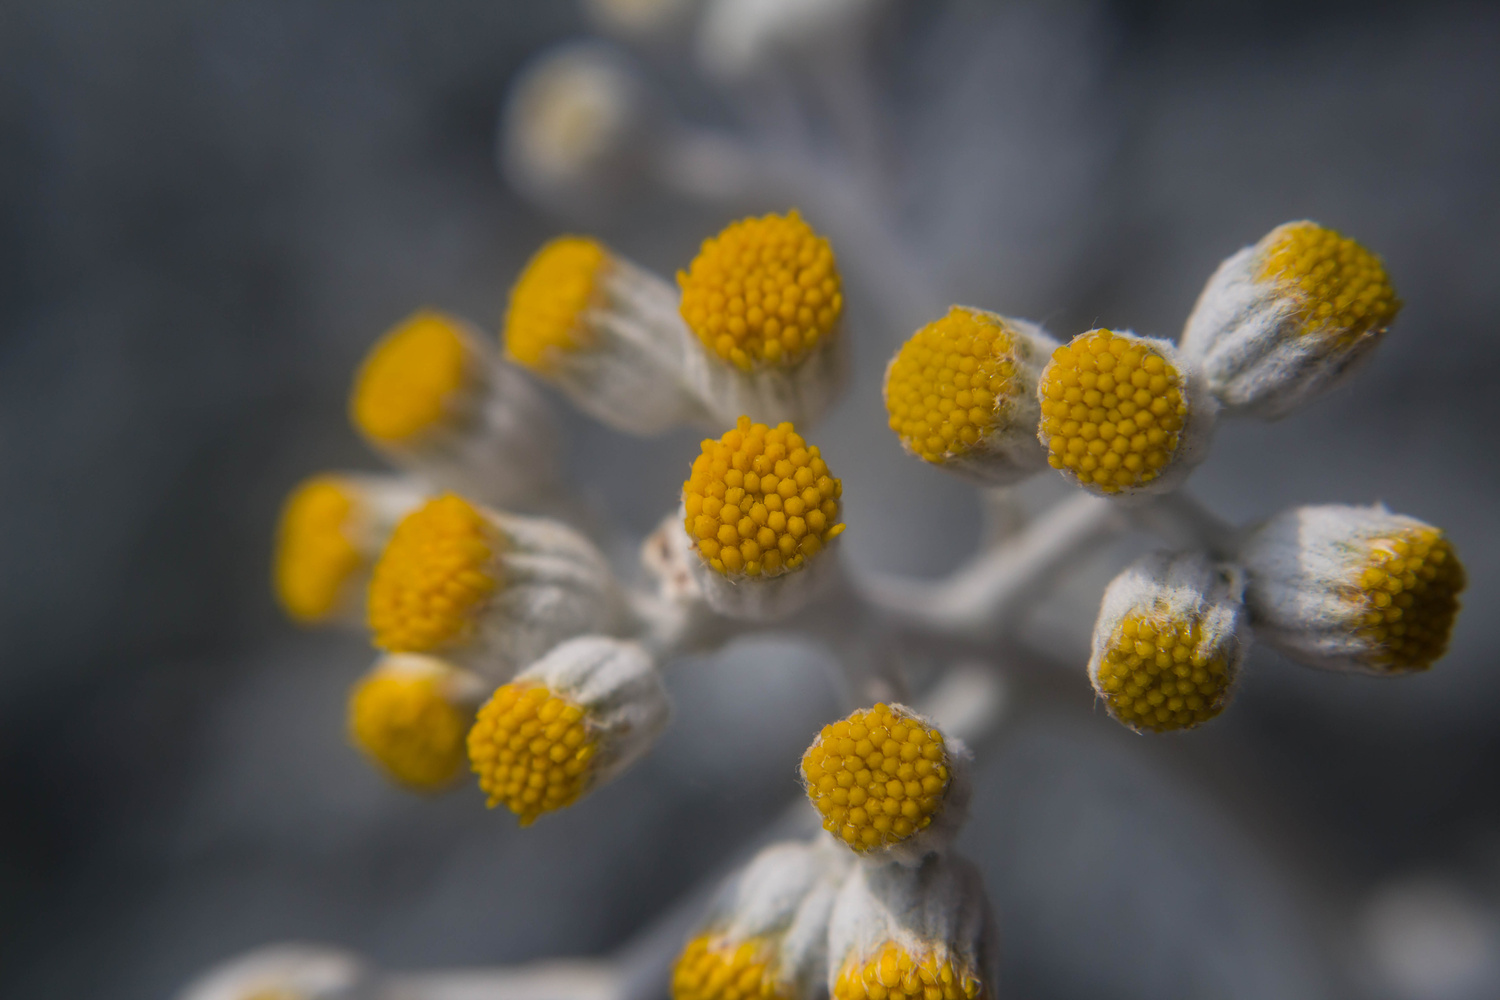 Flowers by Andrew Smith